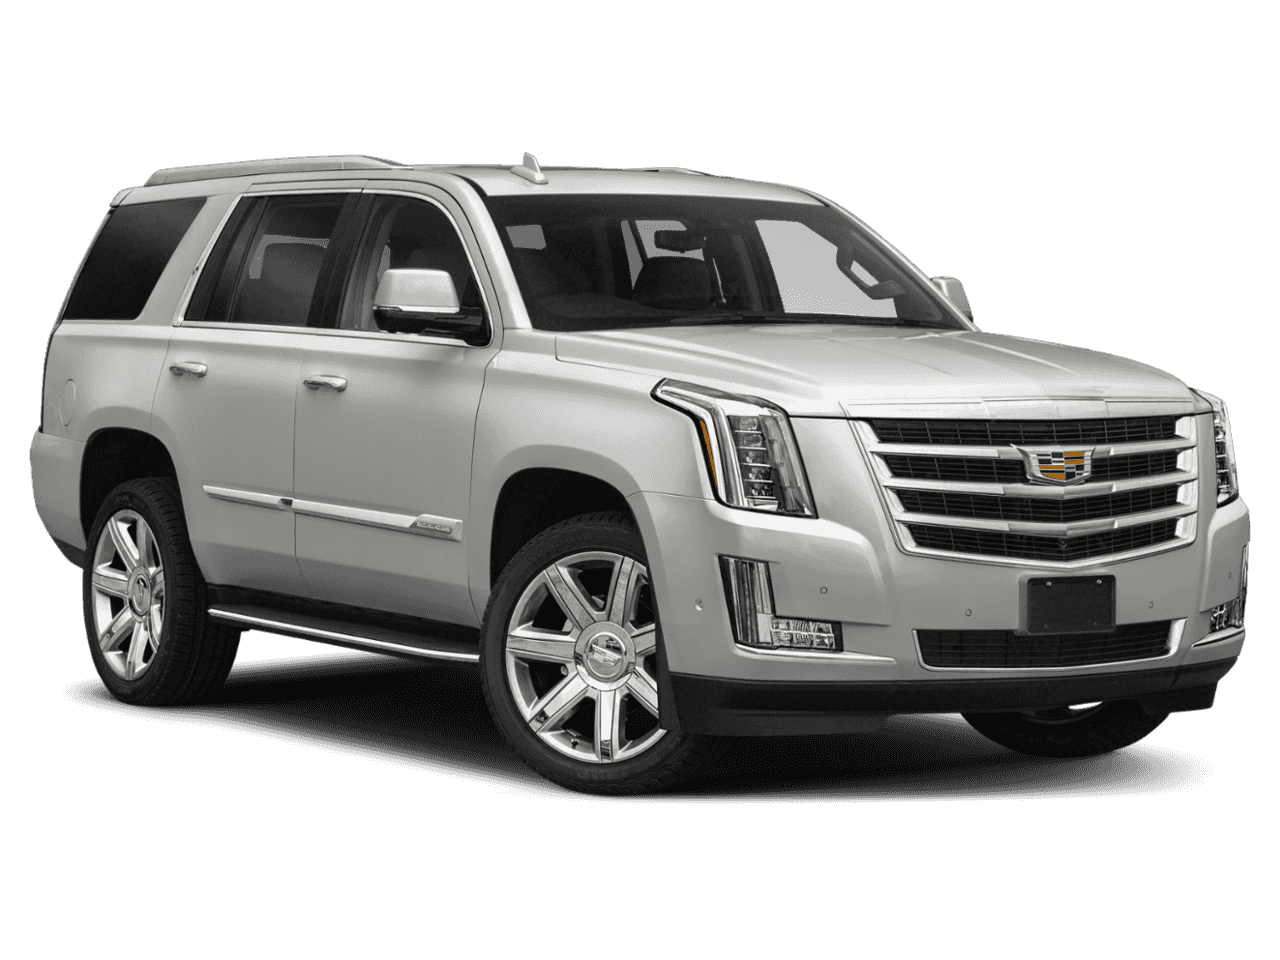 "New 2020 Cadillac<br /><span class=""vdp-trim"">Escalade Premium Luxury 4WD Sport Utility</span>"